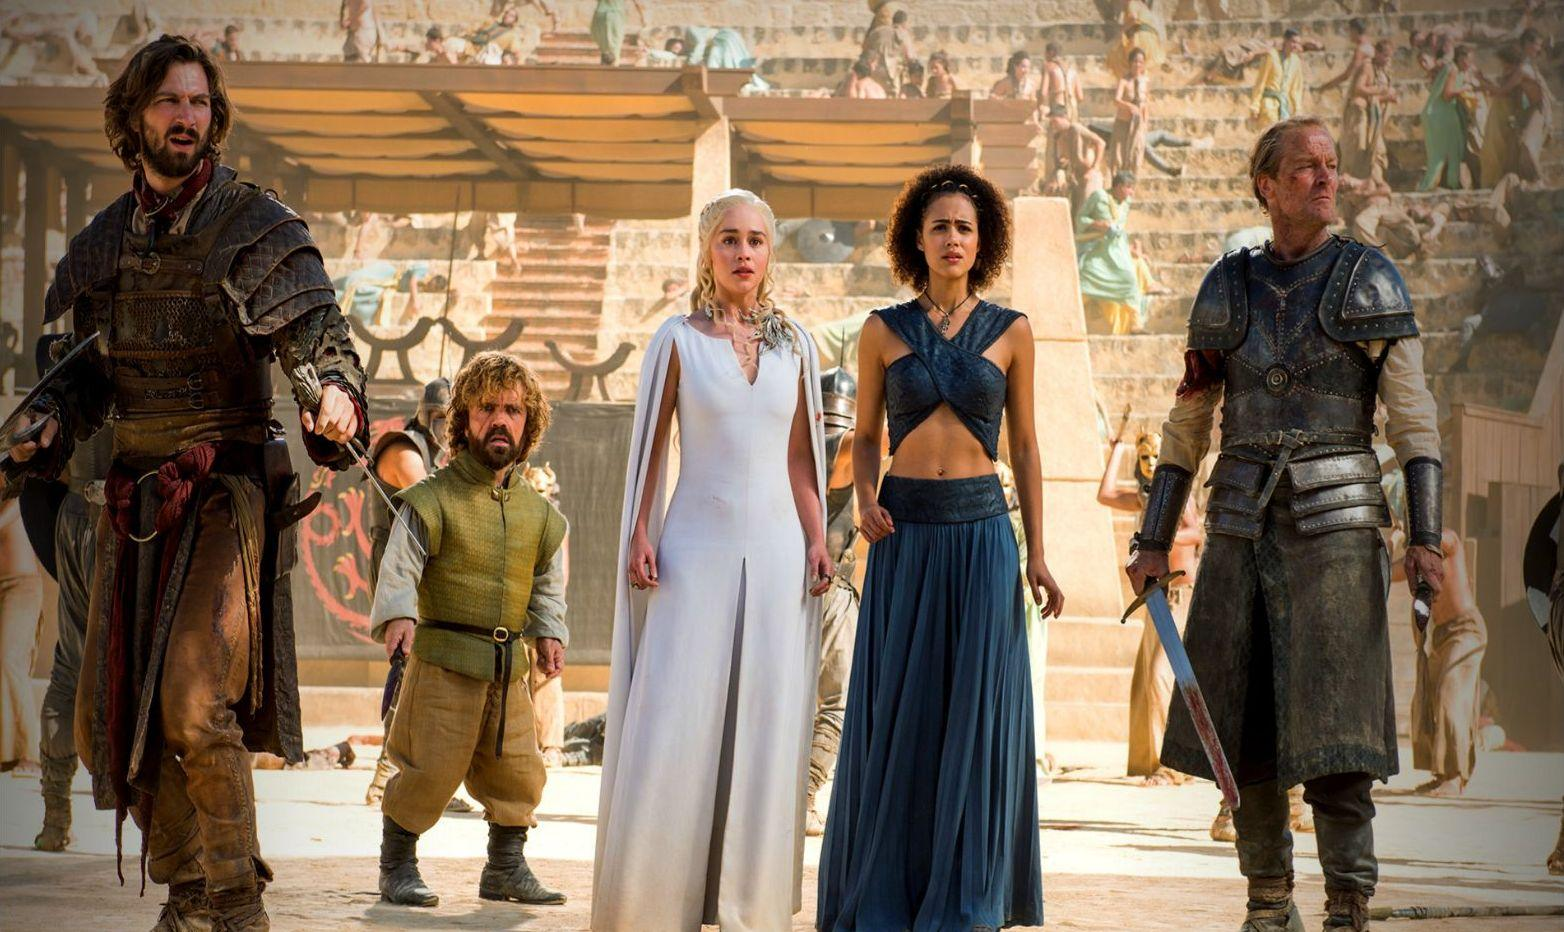 NEGATIV_GAME OF THRONES_THE DANCE OF DRAGONS_Daario Naharis, Tyrion Lannister, Daenerys Targaryen, Missandei, Ser Jorah Mormont